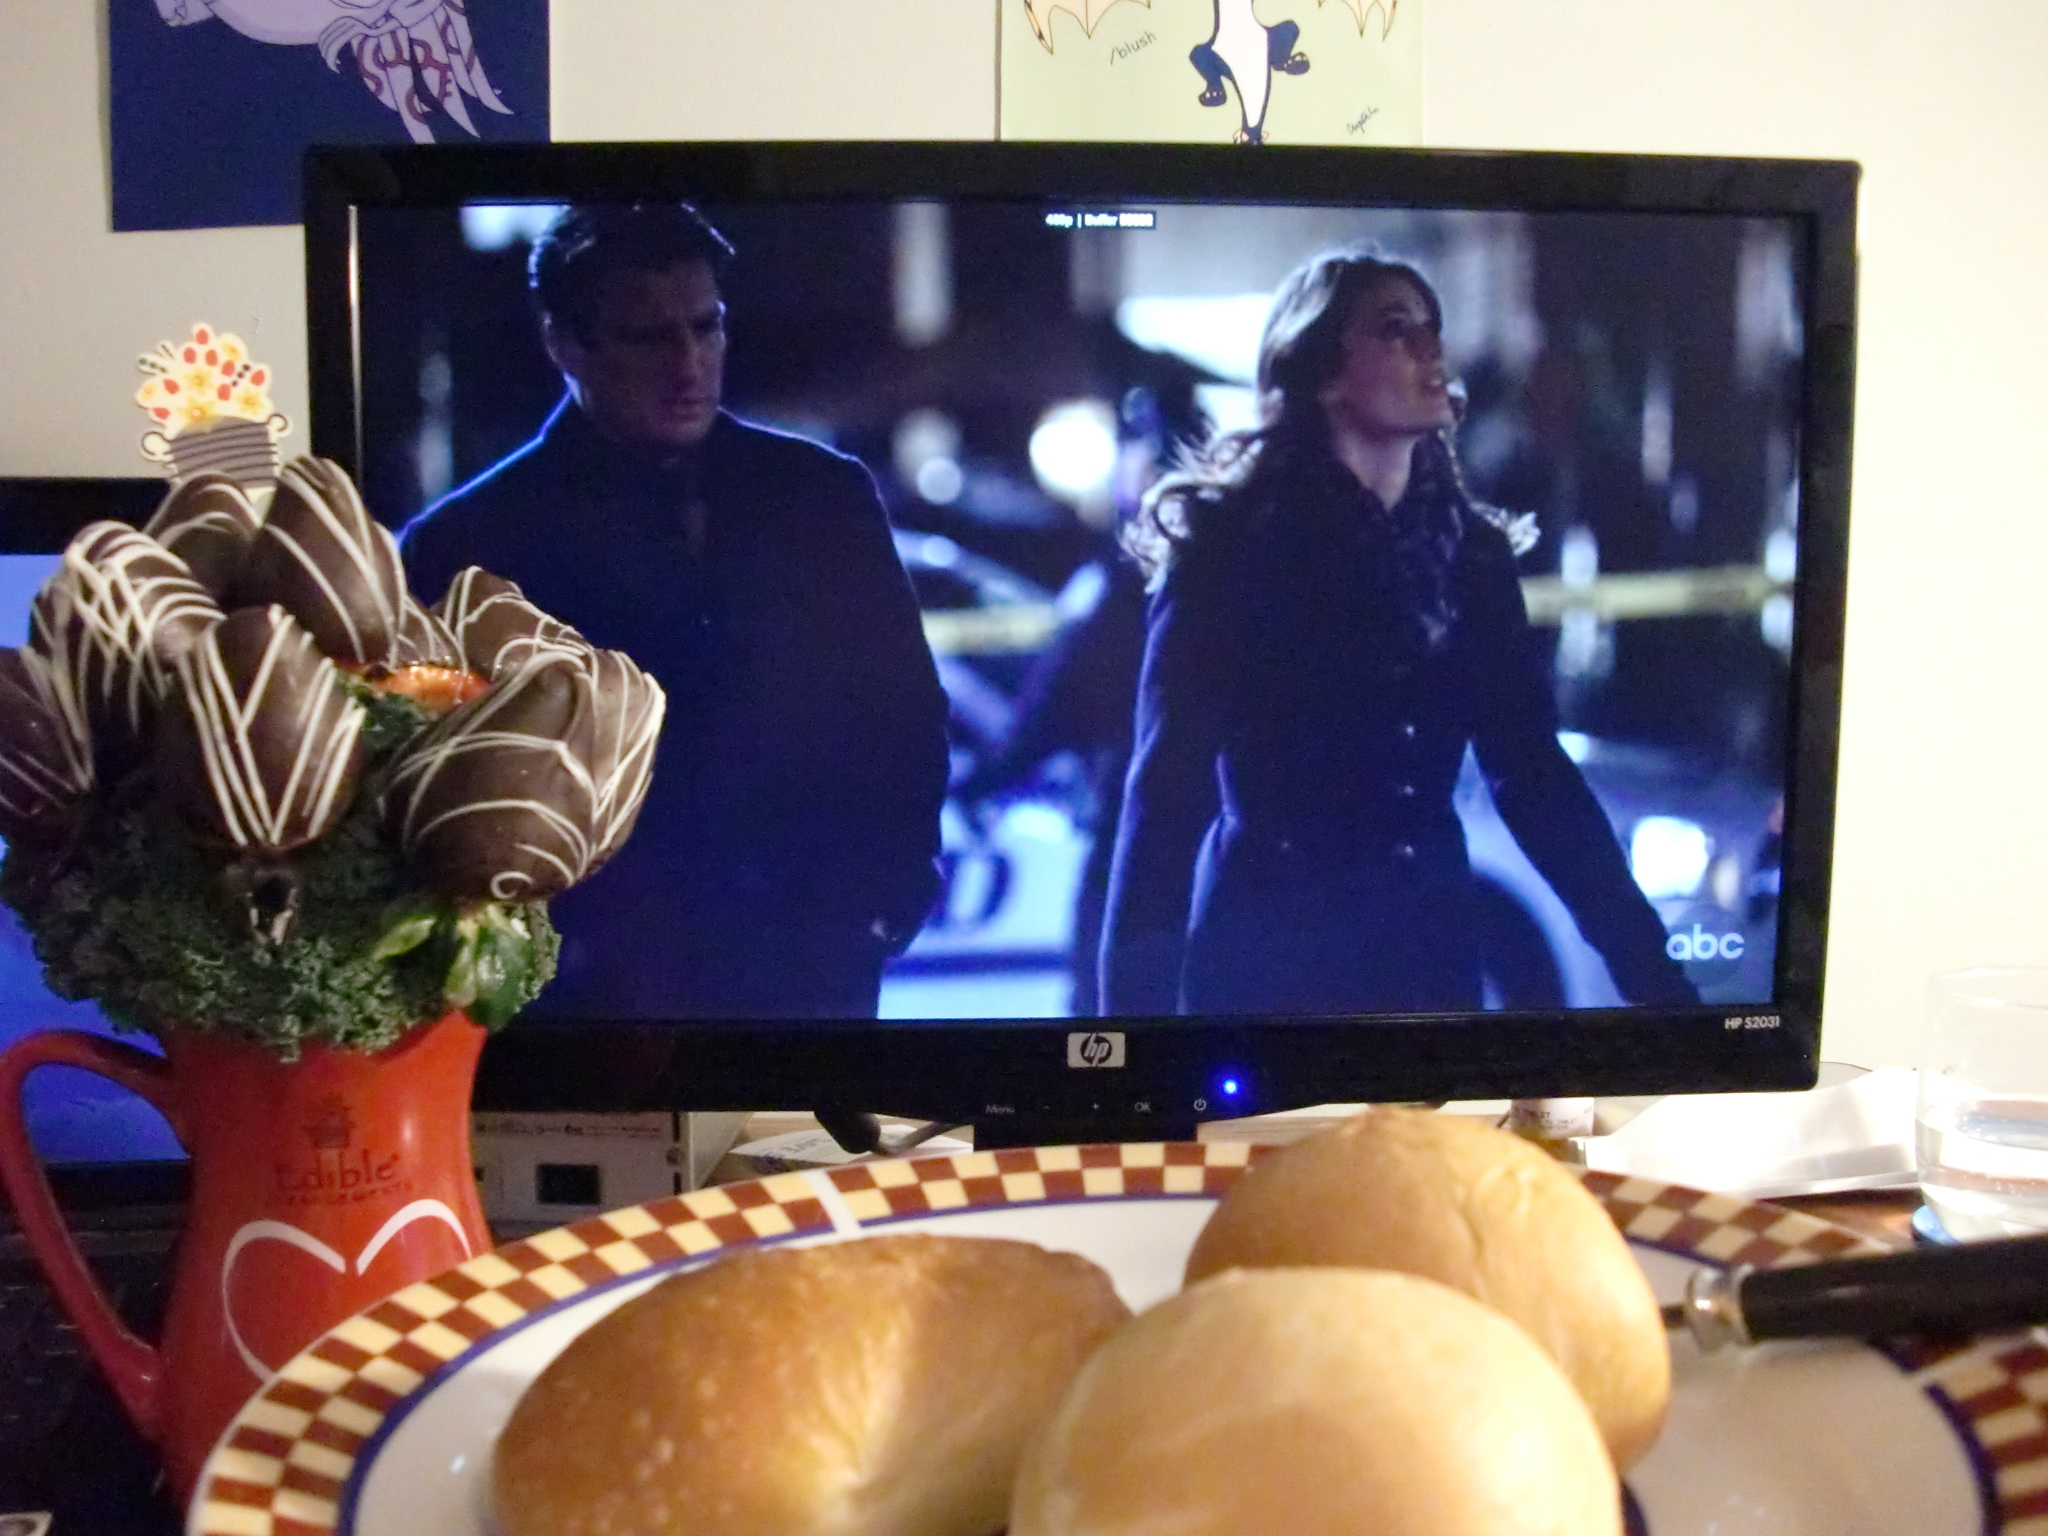 Long-distance Valentine's Day date: eating kolaches and Edible Arrangements while watching an episode of Castle